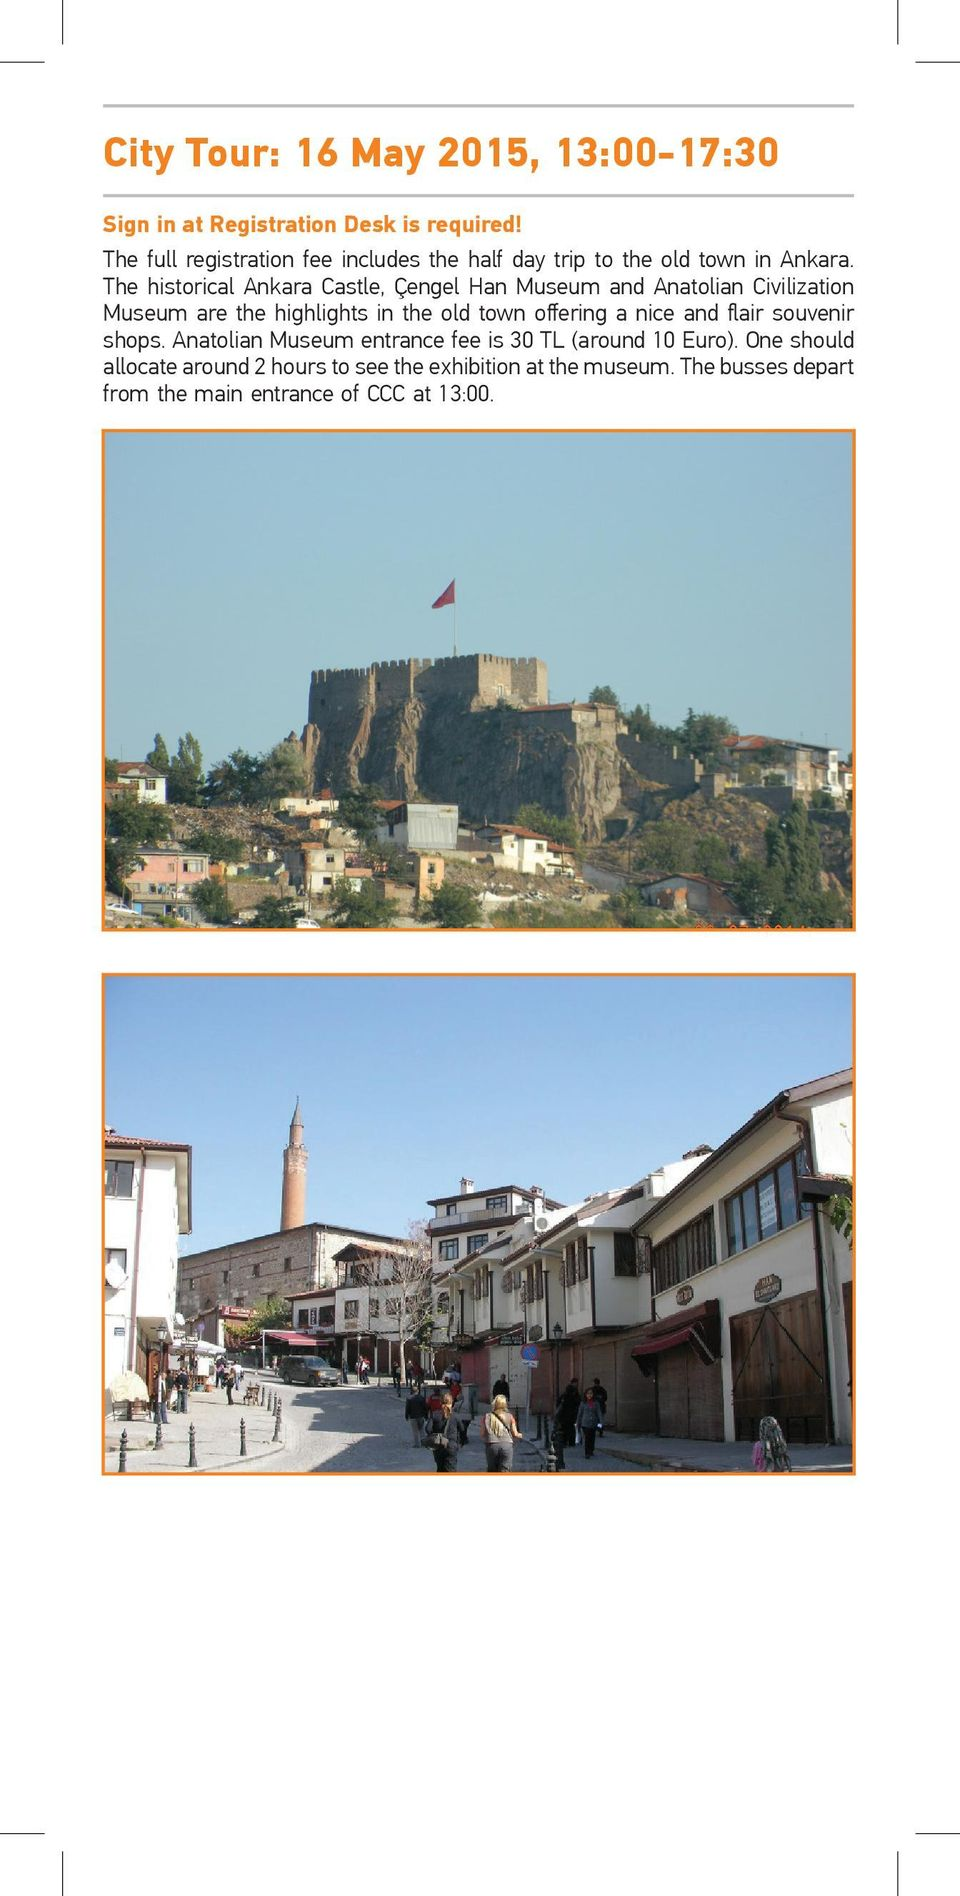 The historical Ankara Castle, Çengel Han Museum and Anatolian Civilization Museum are the highlights in the old town offering